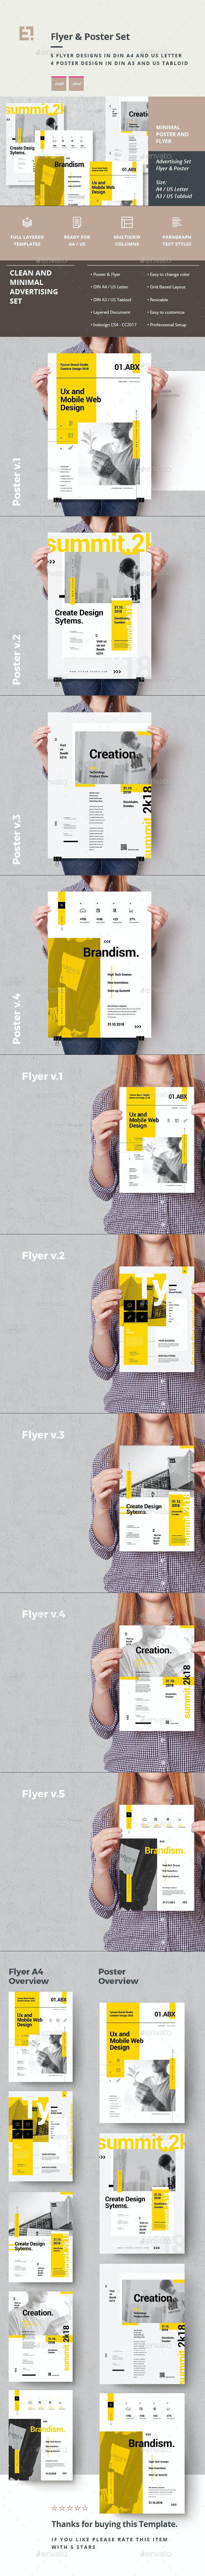 Advertising Poster and Flyer Set - Corporate Flyers